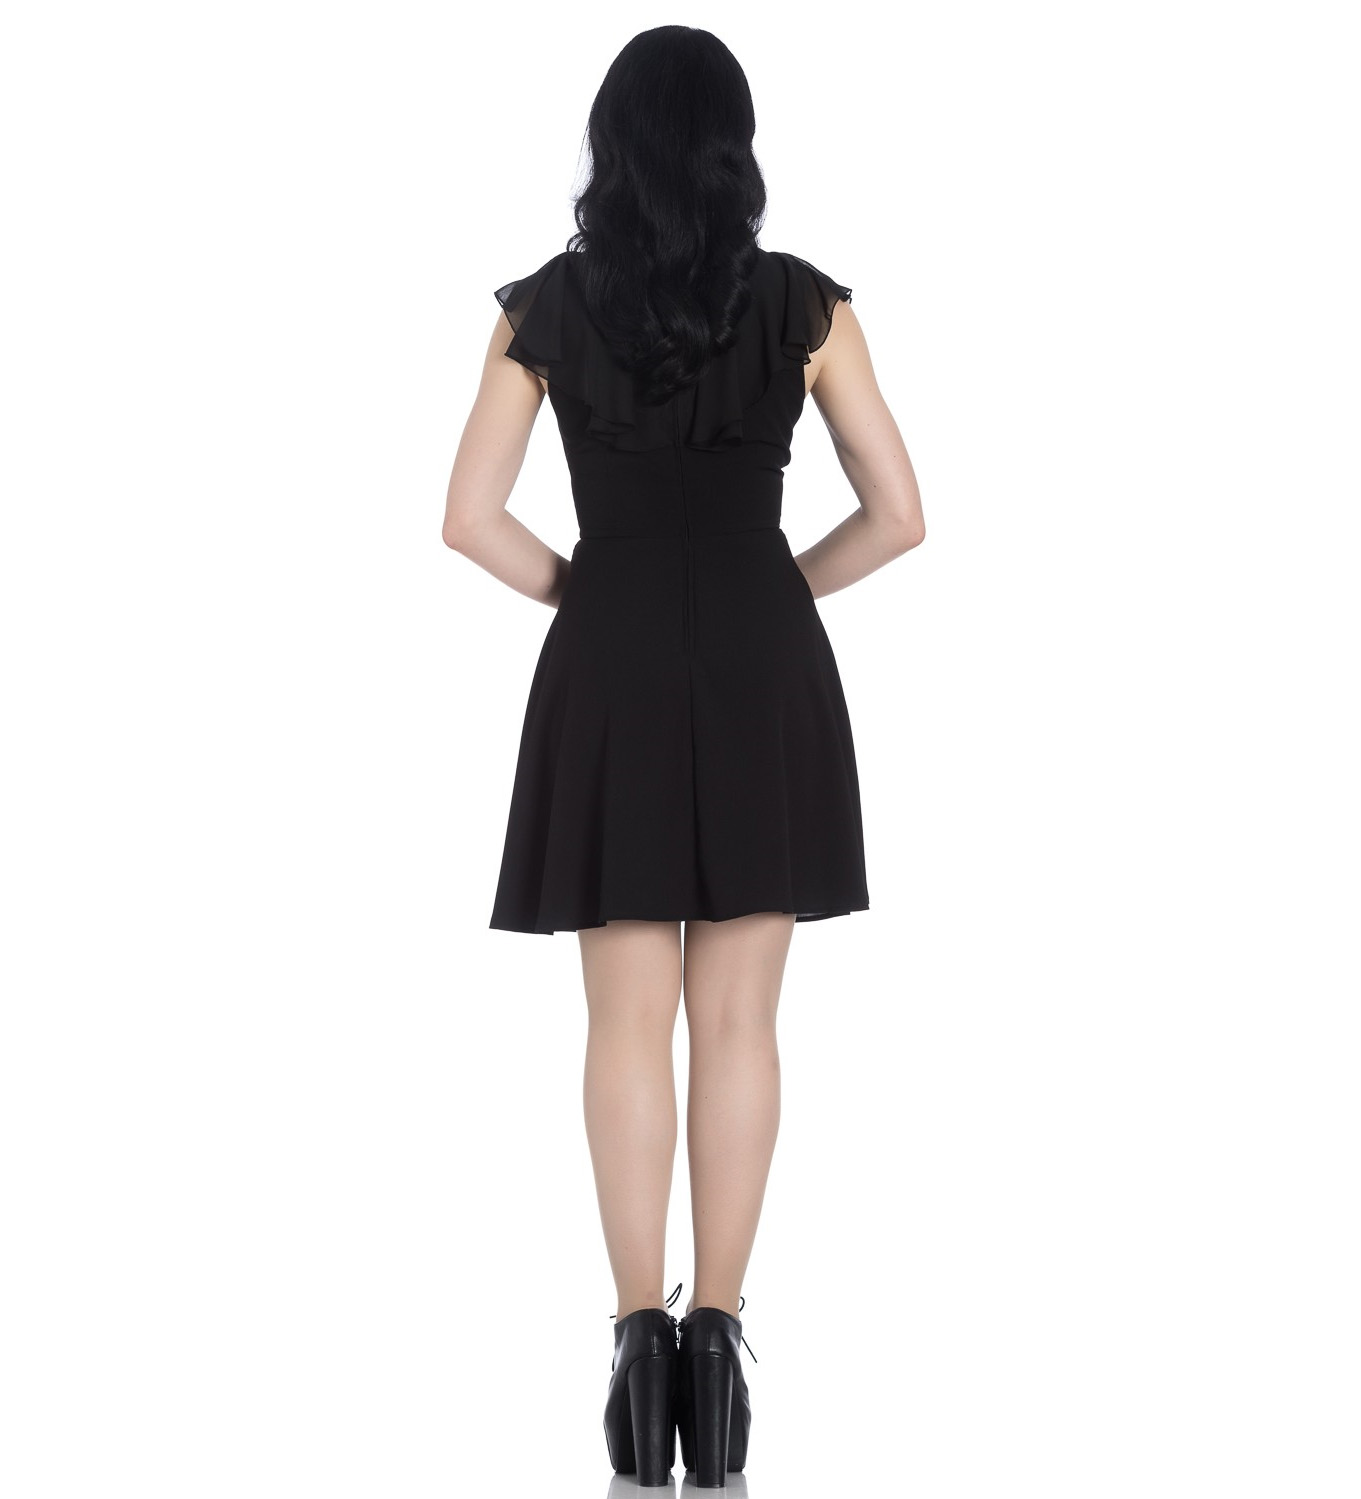 Hell-Bunny-Floaty-Lace-Up-Goth-Witch-Punk-Mini-Dress-ONYX-Black-All-Sizes thumbnail 25